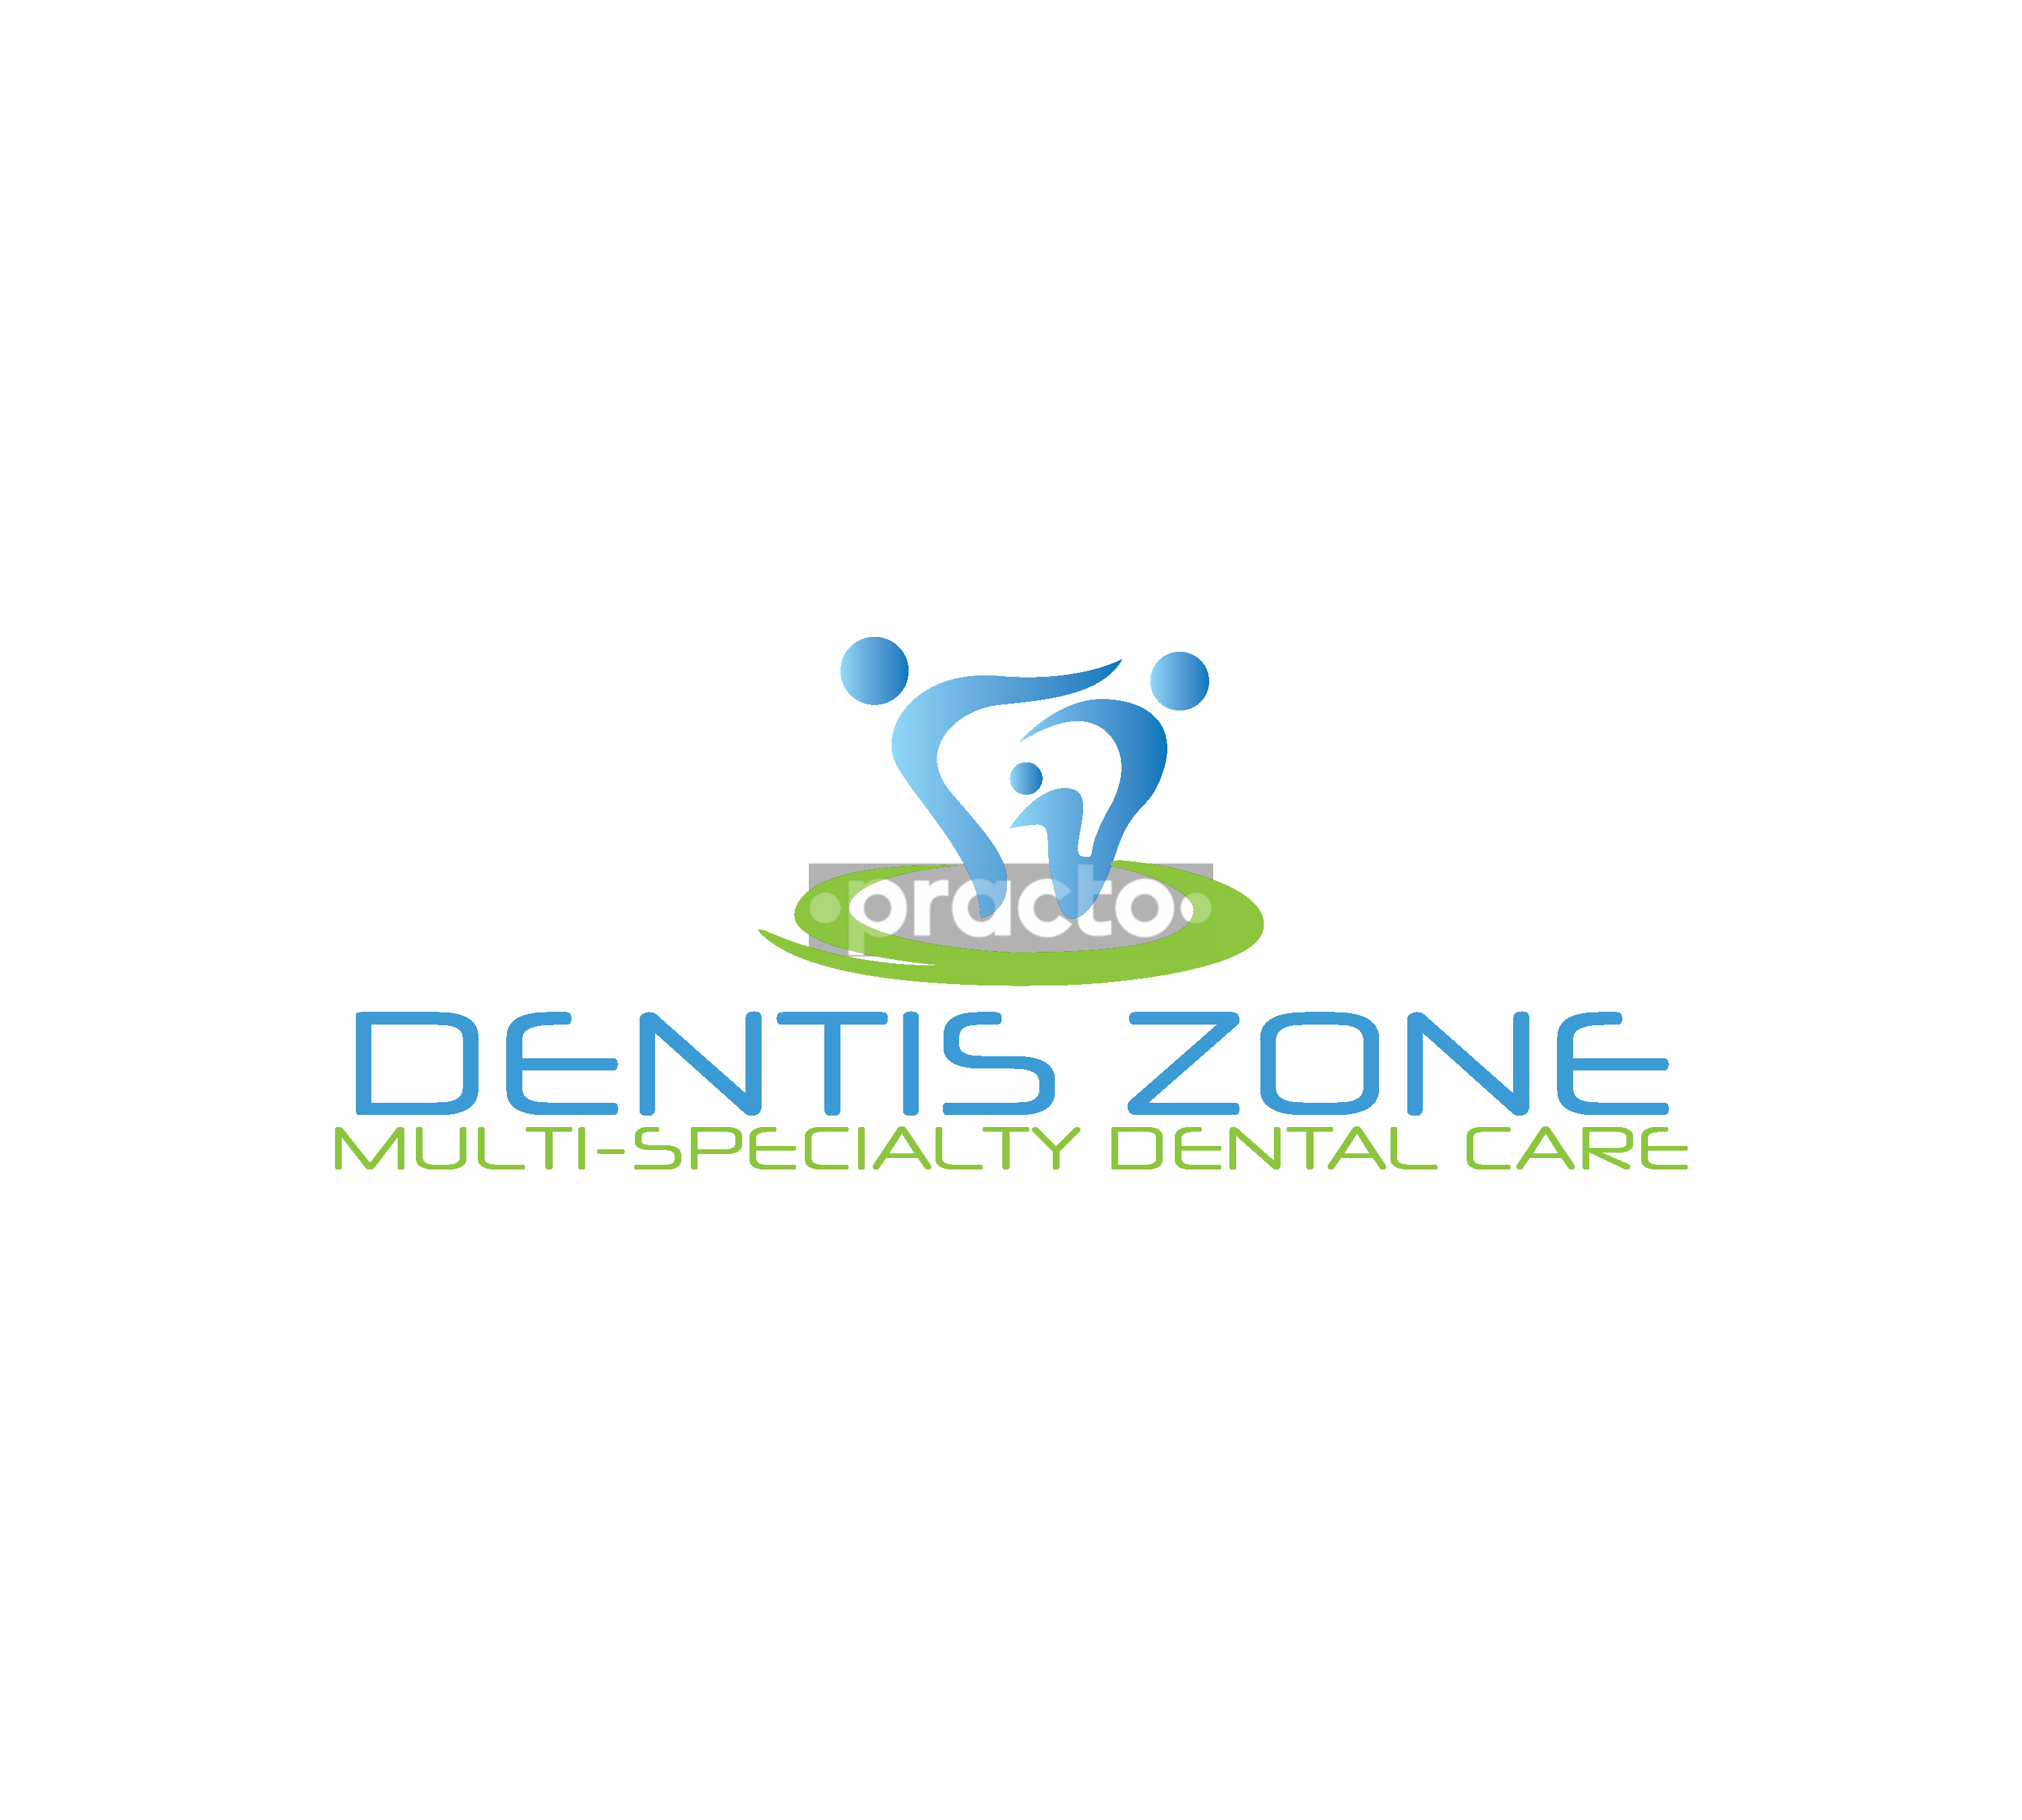 Dentis Zone Multi-Specialty Family Dental Care